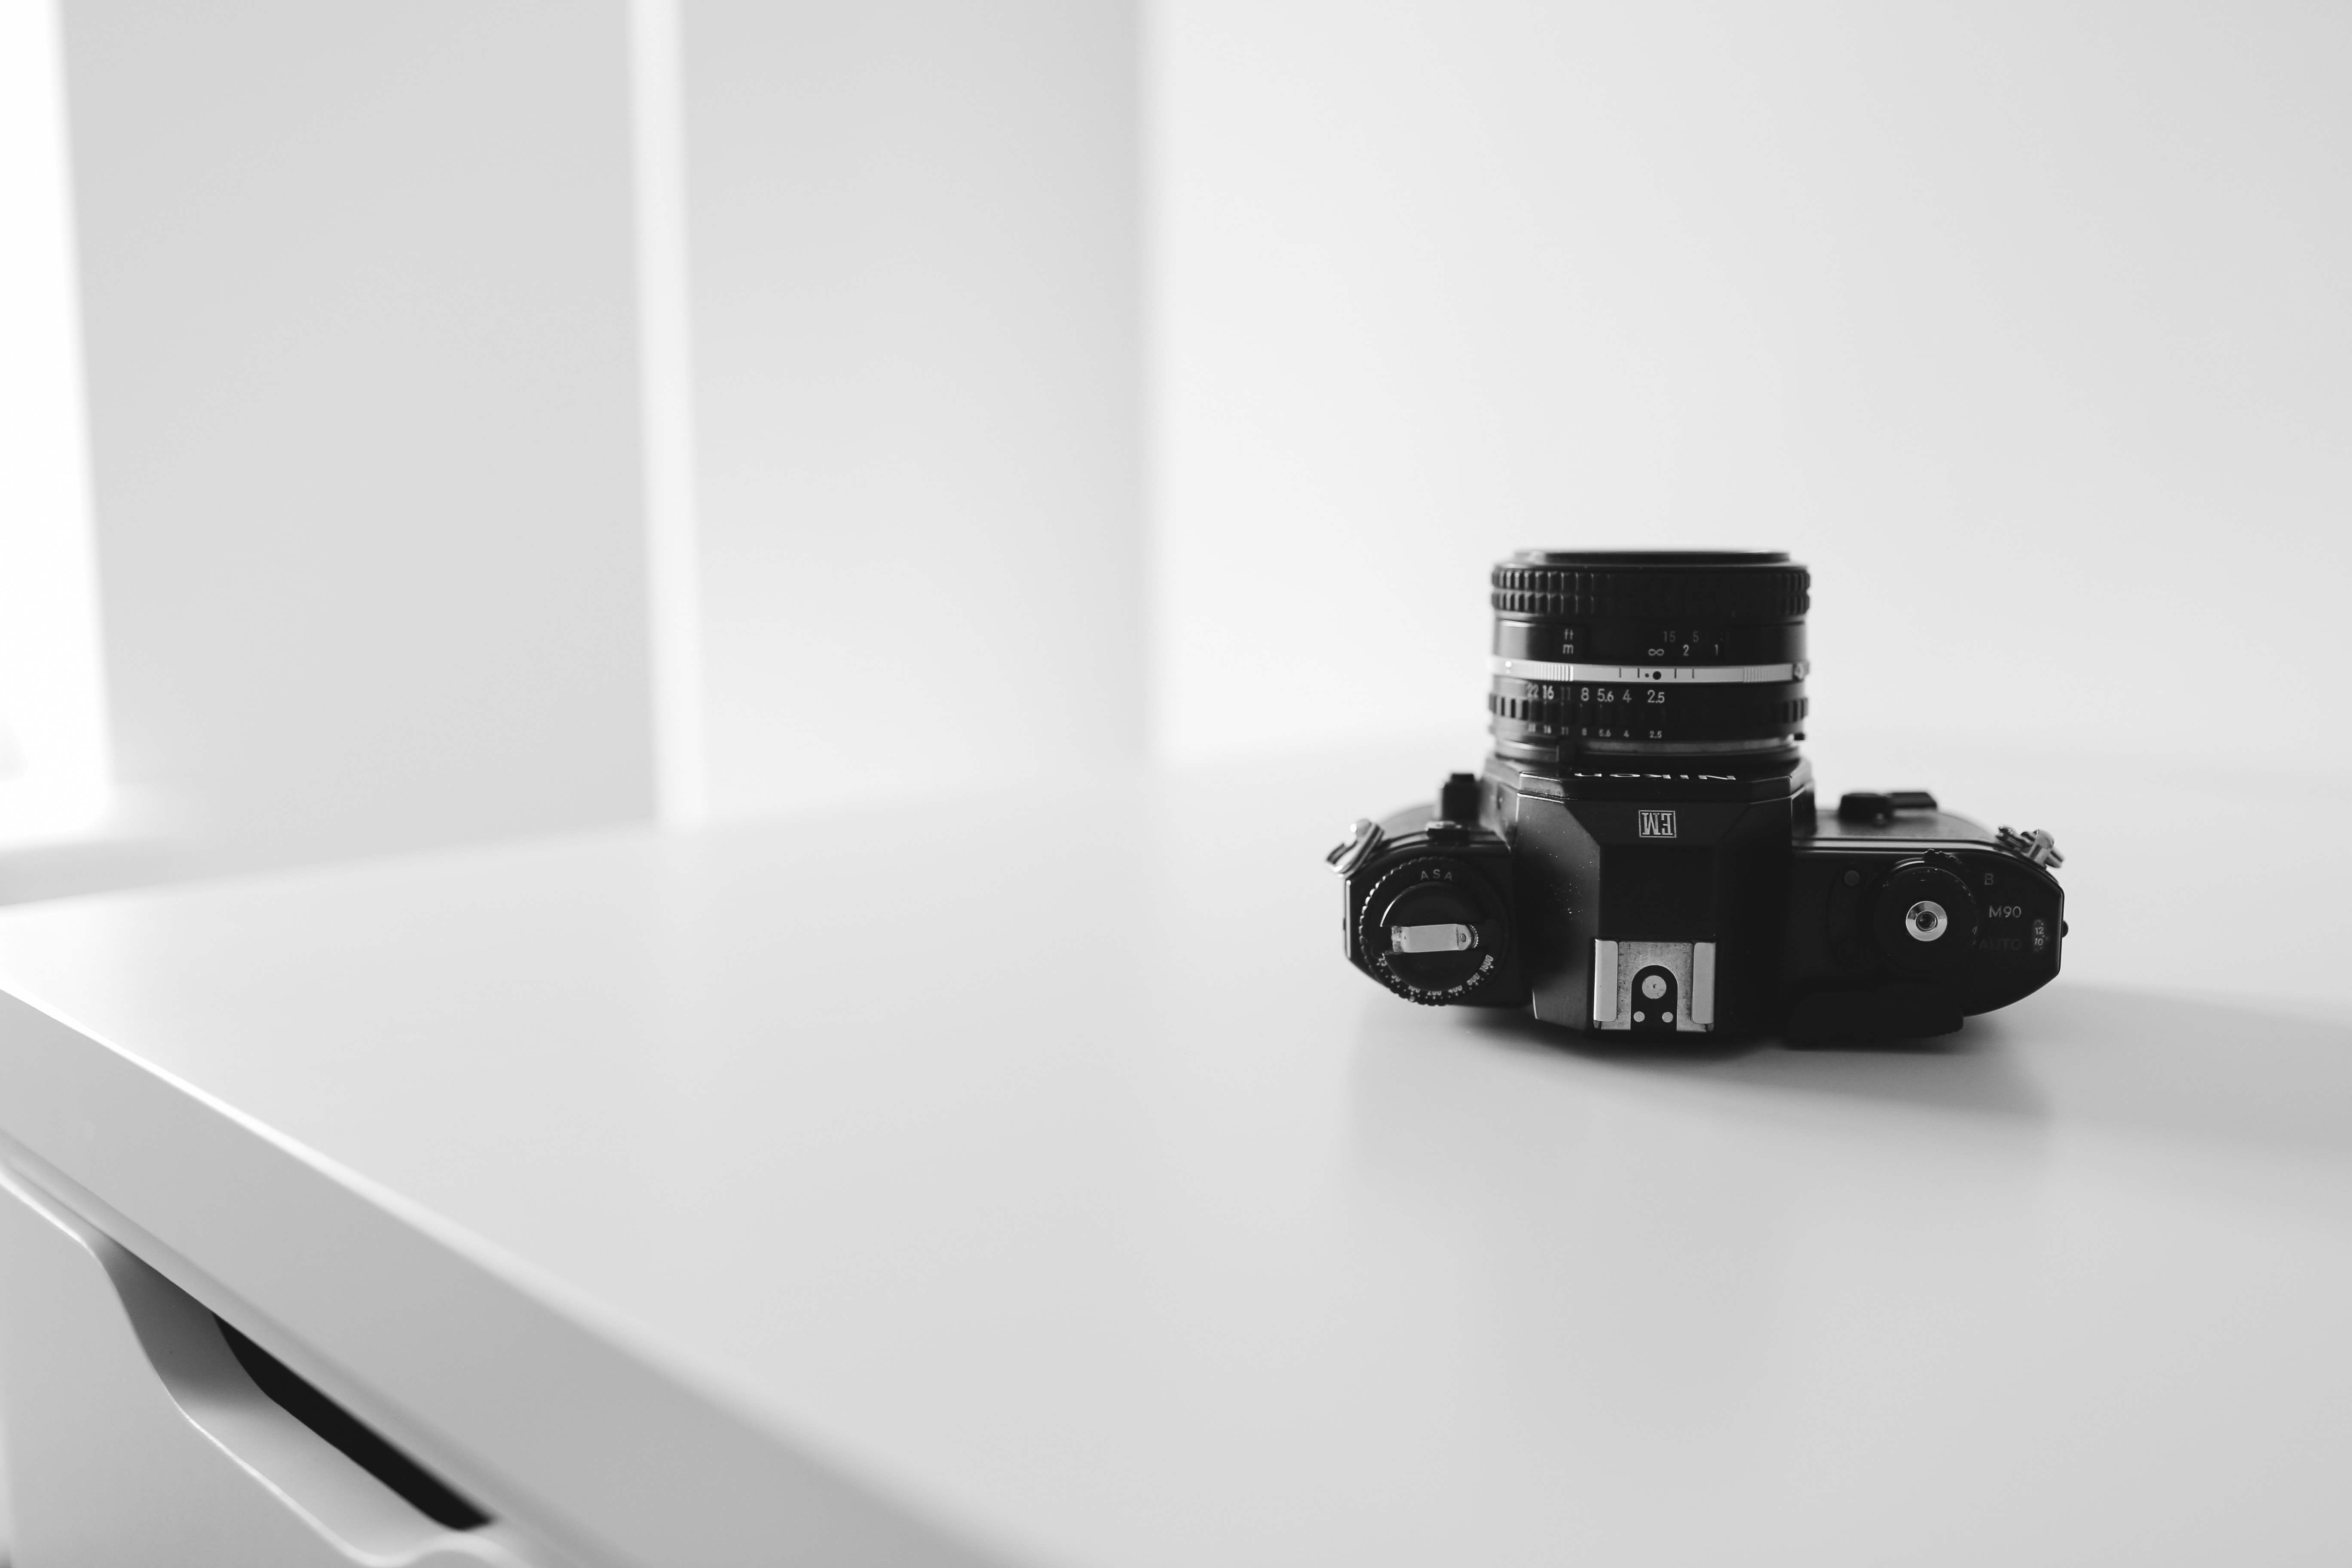 Monochrome of a camera sitting upside down on a table top